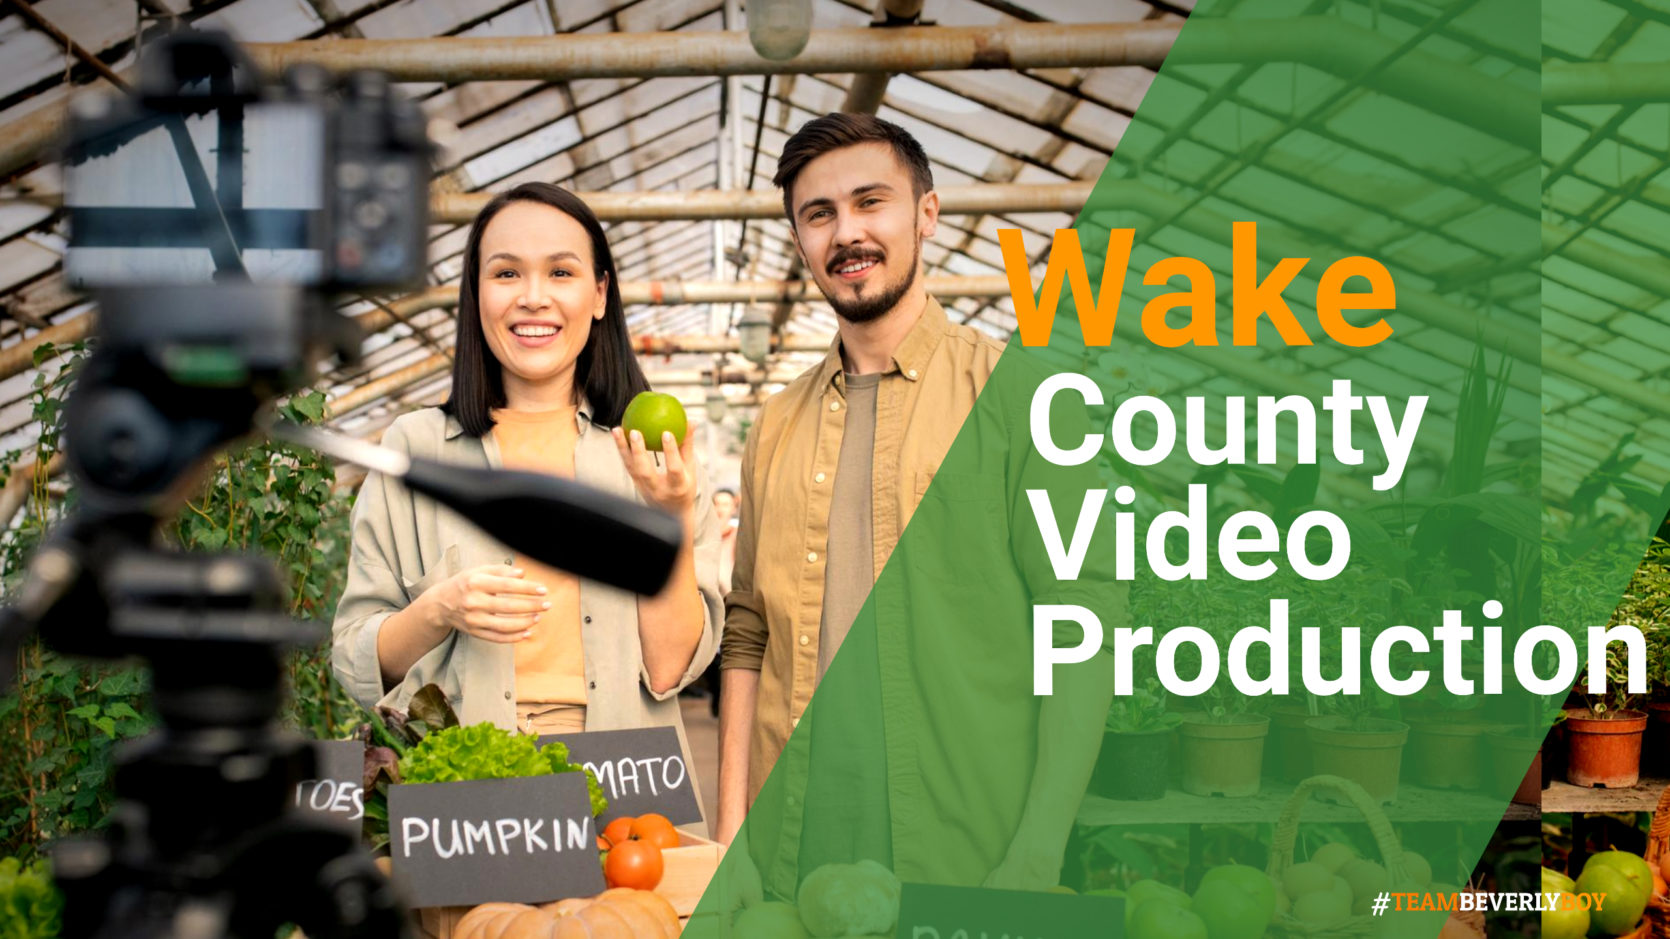 Wake County video production